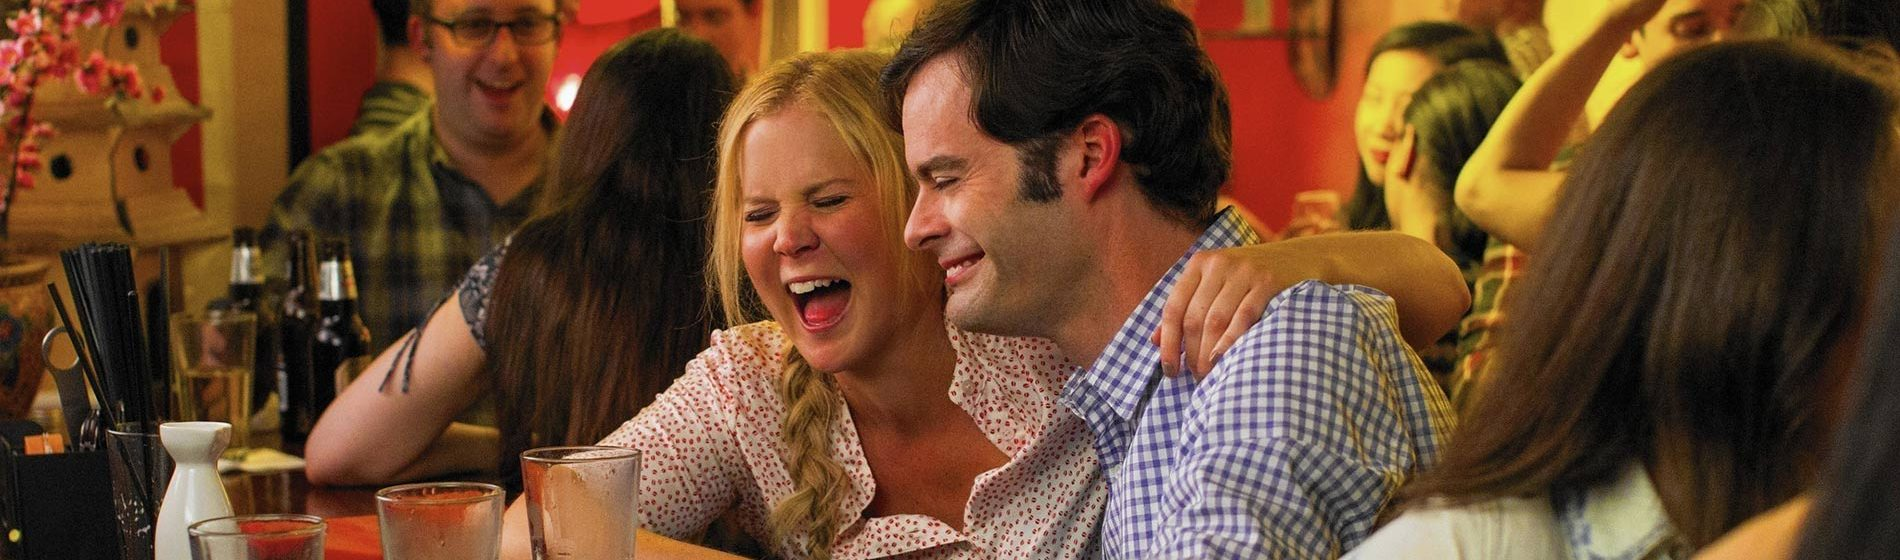 Trainwreck - Amy Schumer